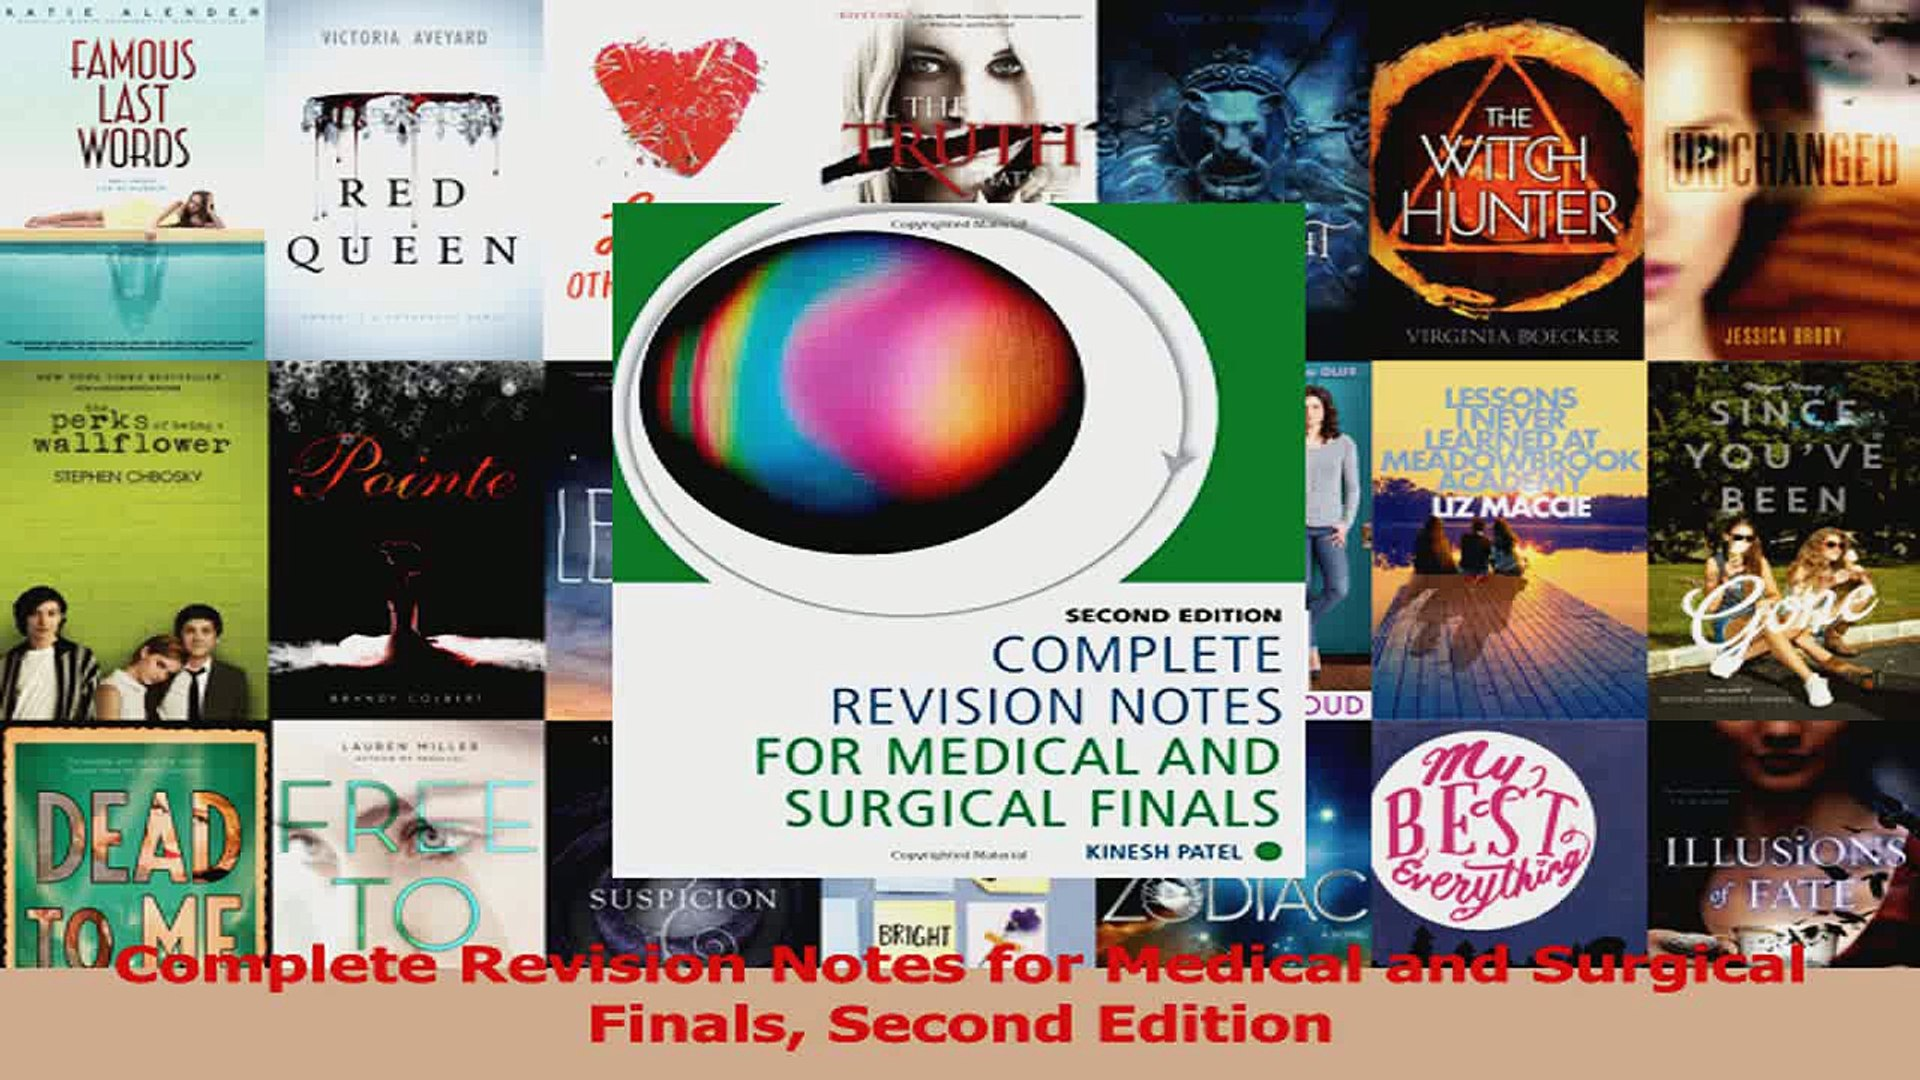 Complete Revision Notes for Medical and Surgical Finals Second Edition  Download